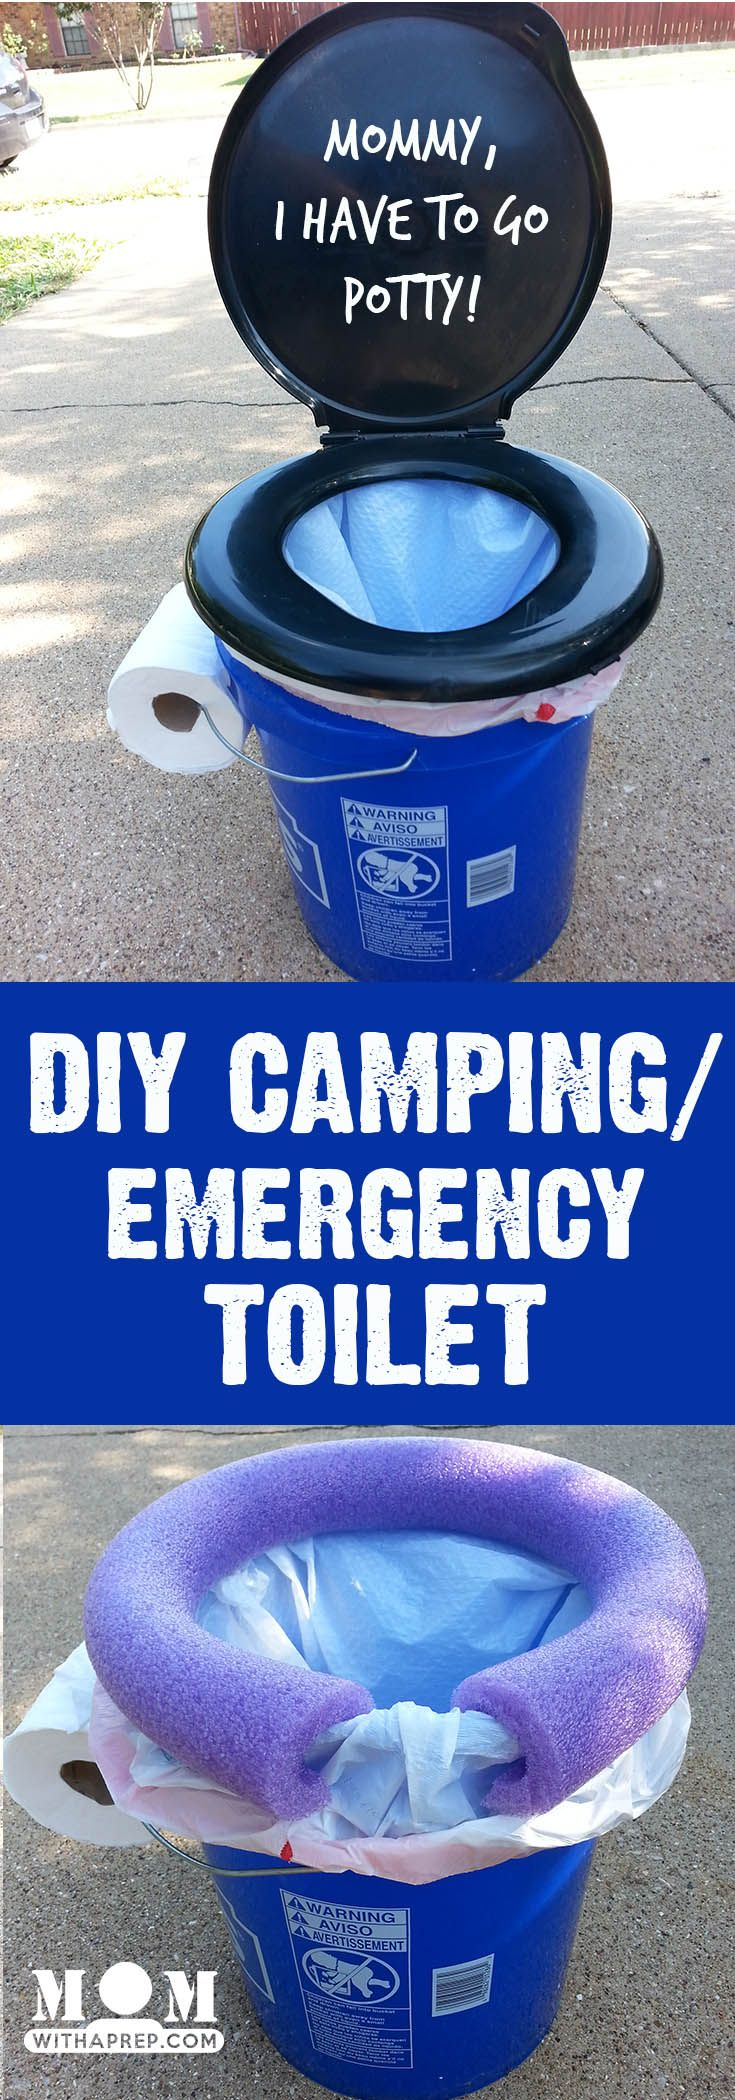 Mommy, I Have to Go Potty! Make Your Own Emergency Toilet #campingideas